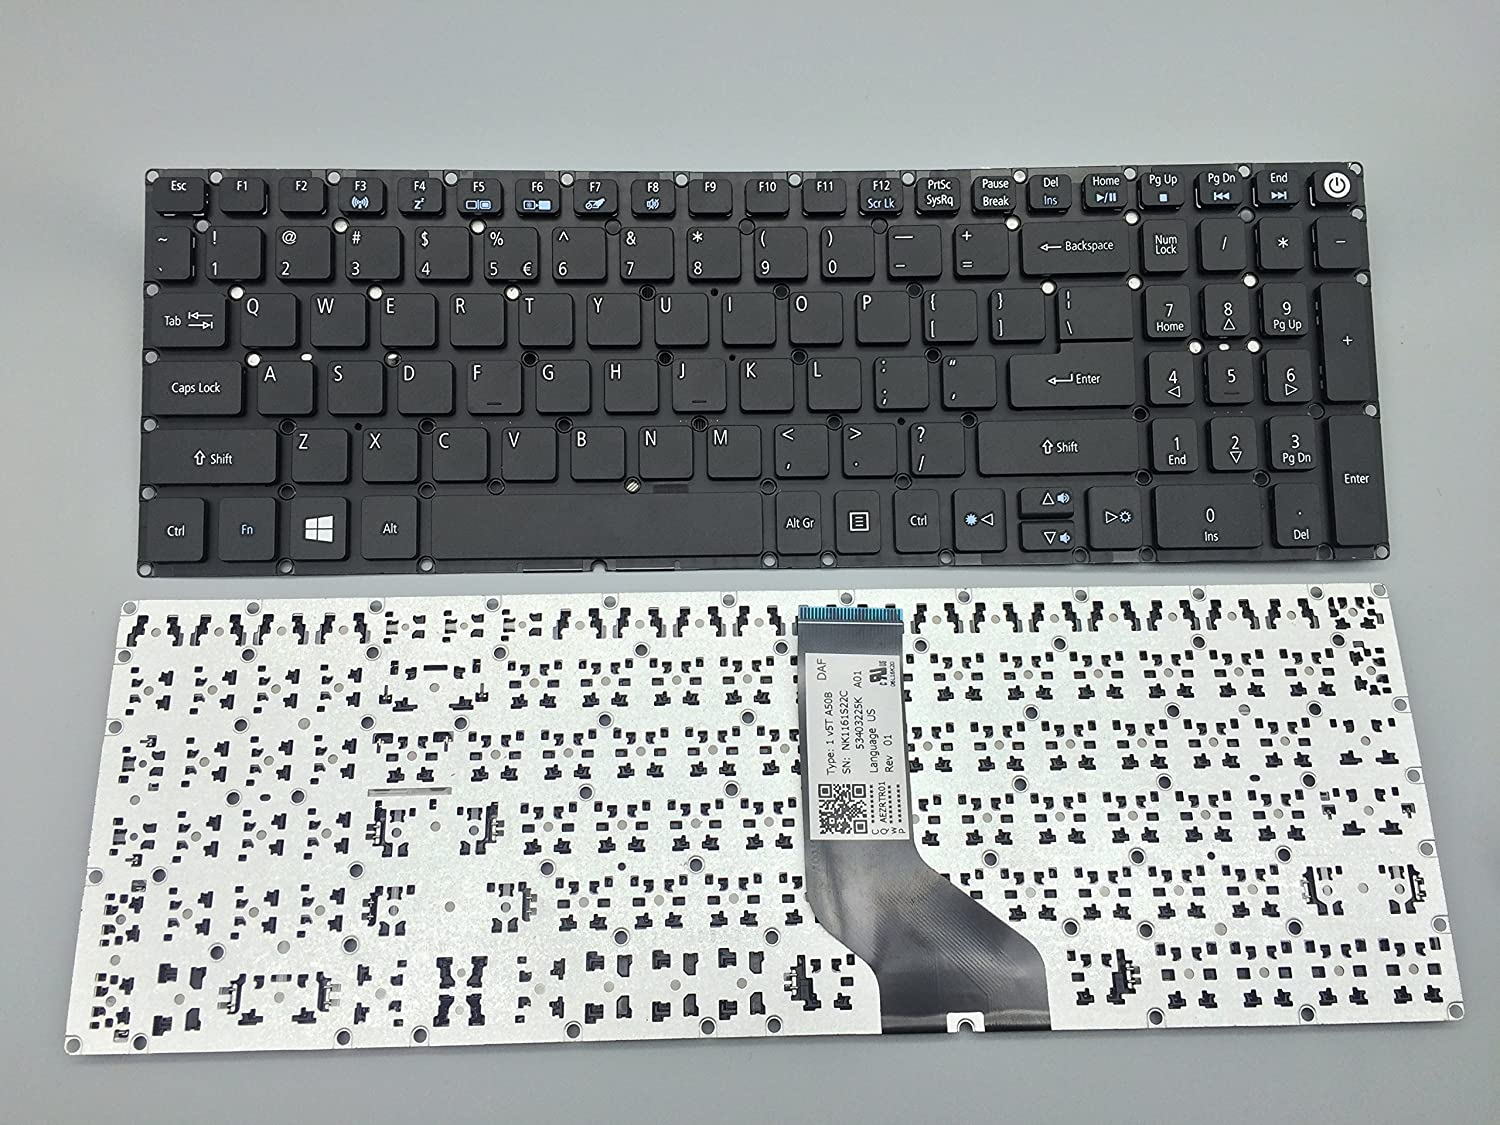 keyboard go go go Laptop Keyboard Replacement for Acer Aspire E5-573 E5-573G E5-573T E5-573TG Series Laptop No Frame No Backligh E5-573